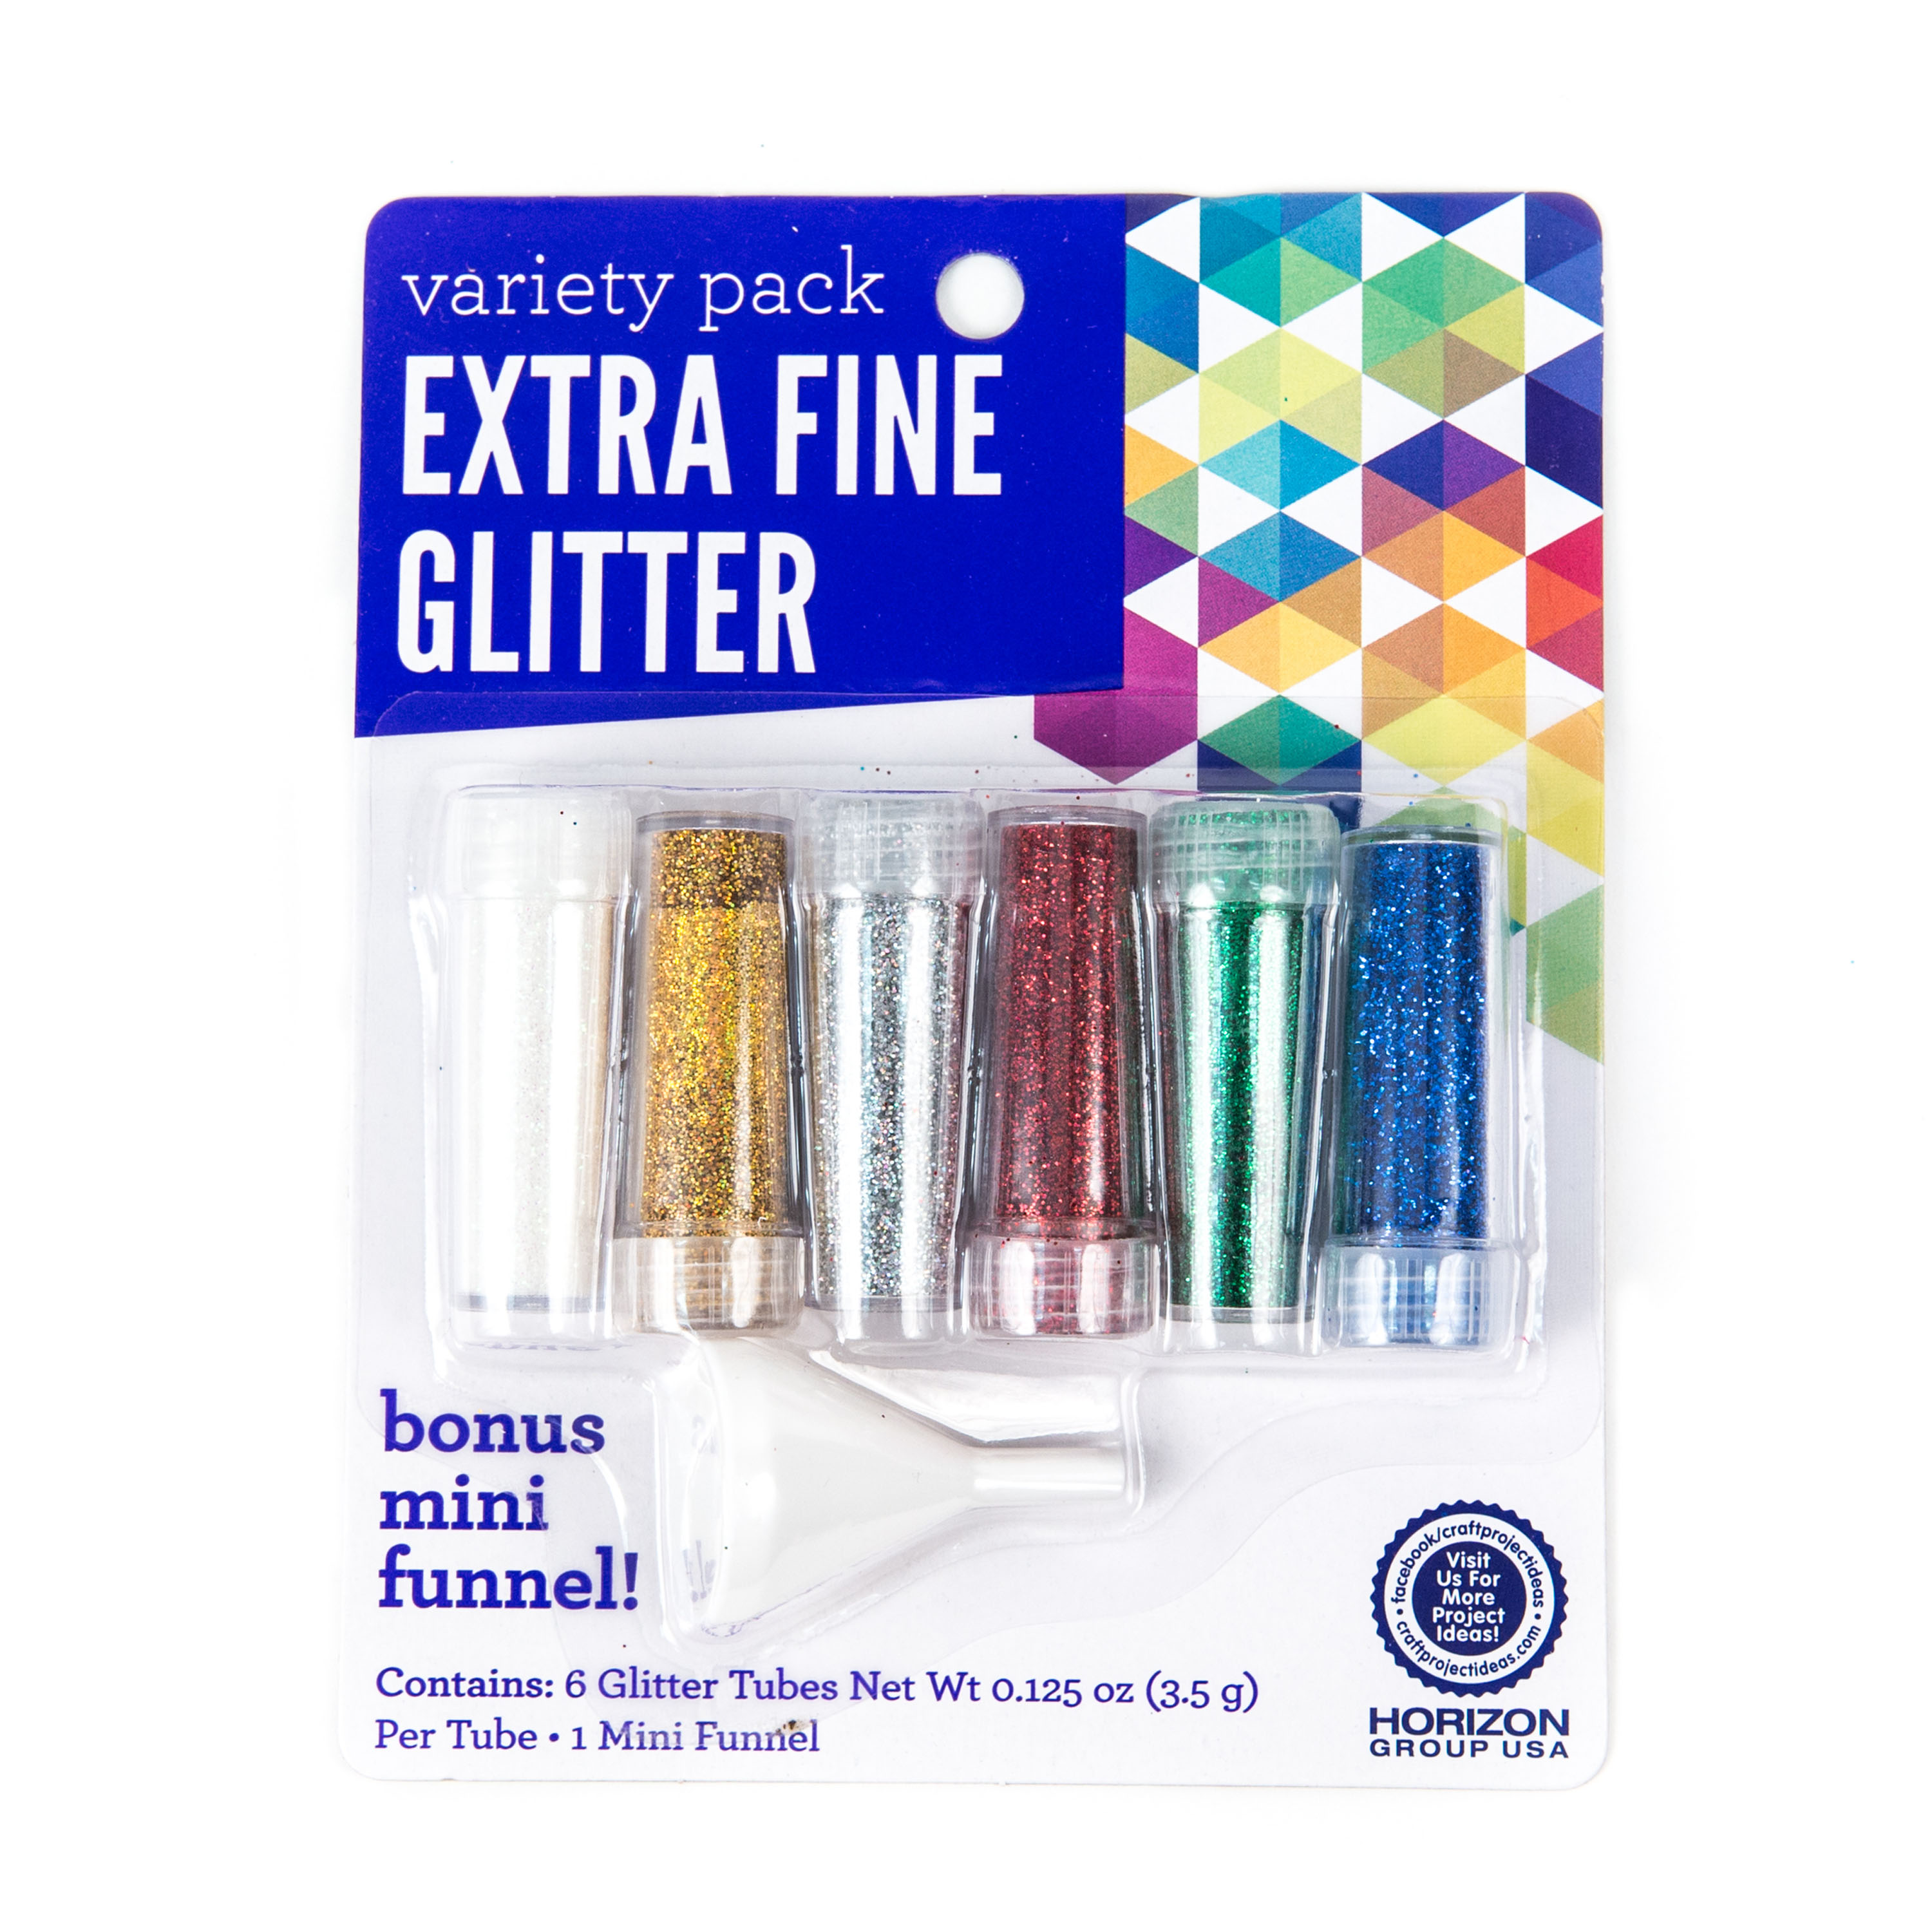 Extra Fine Glitter, 6 PK by Horizon Group USA